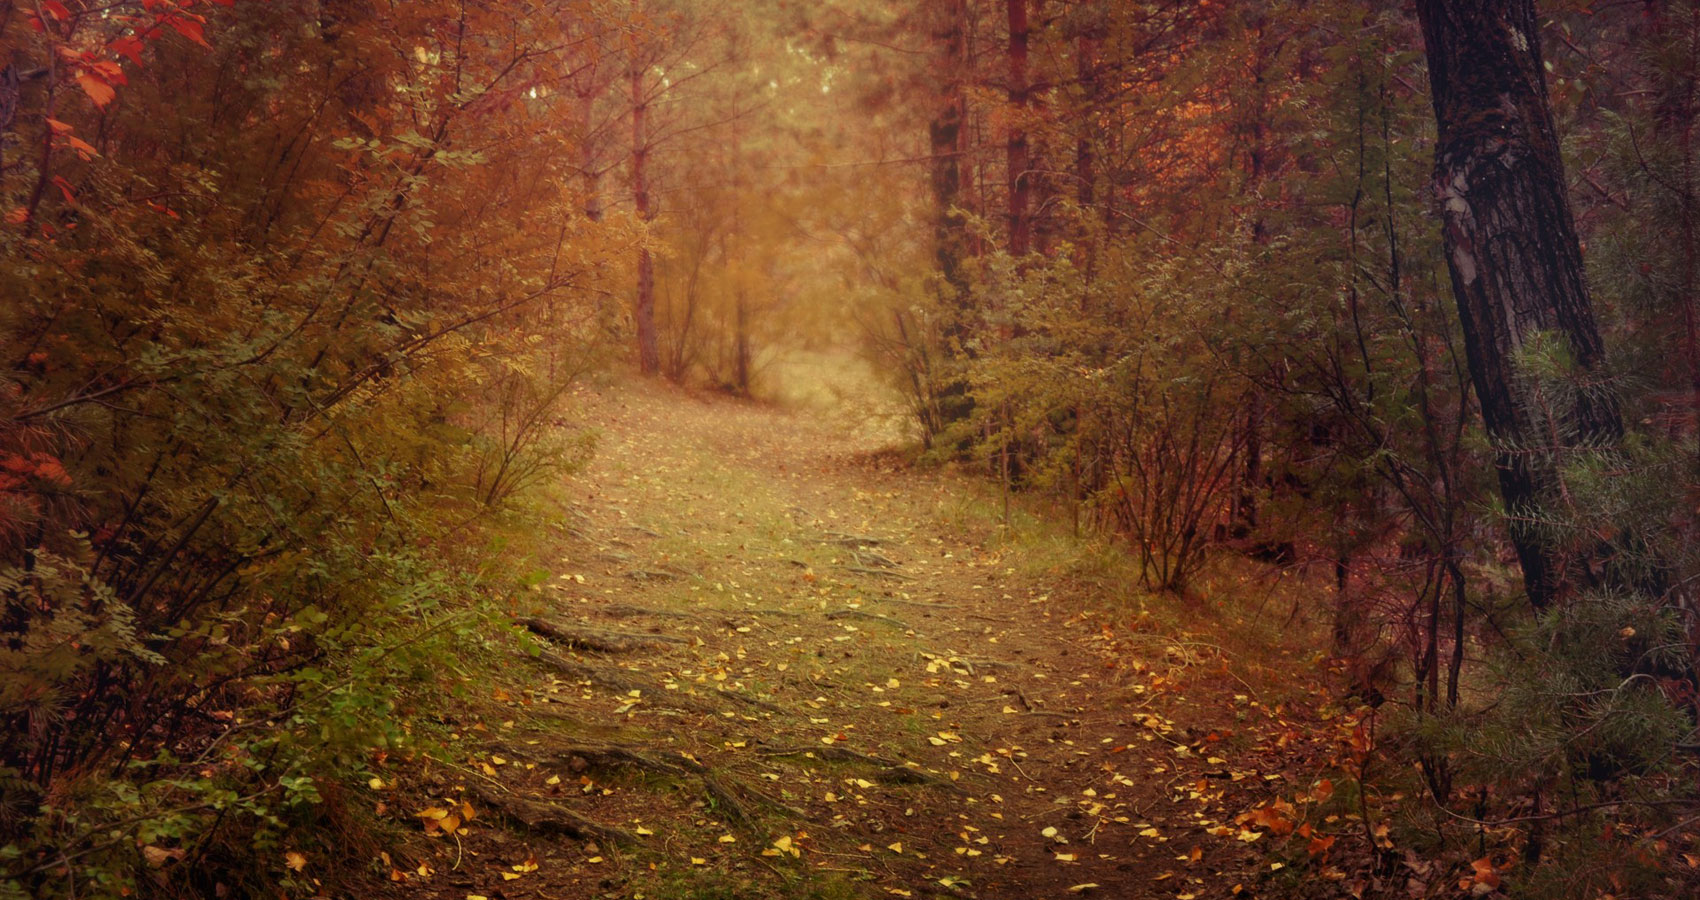 An Evening Walk in Autumn by hedgehog at Spillwords.com